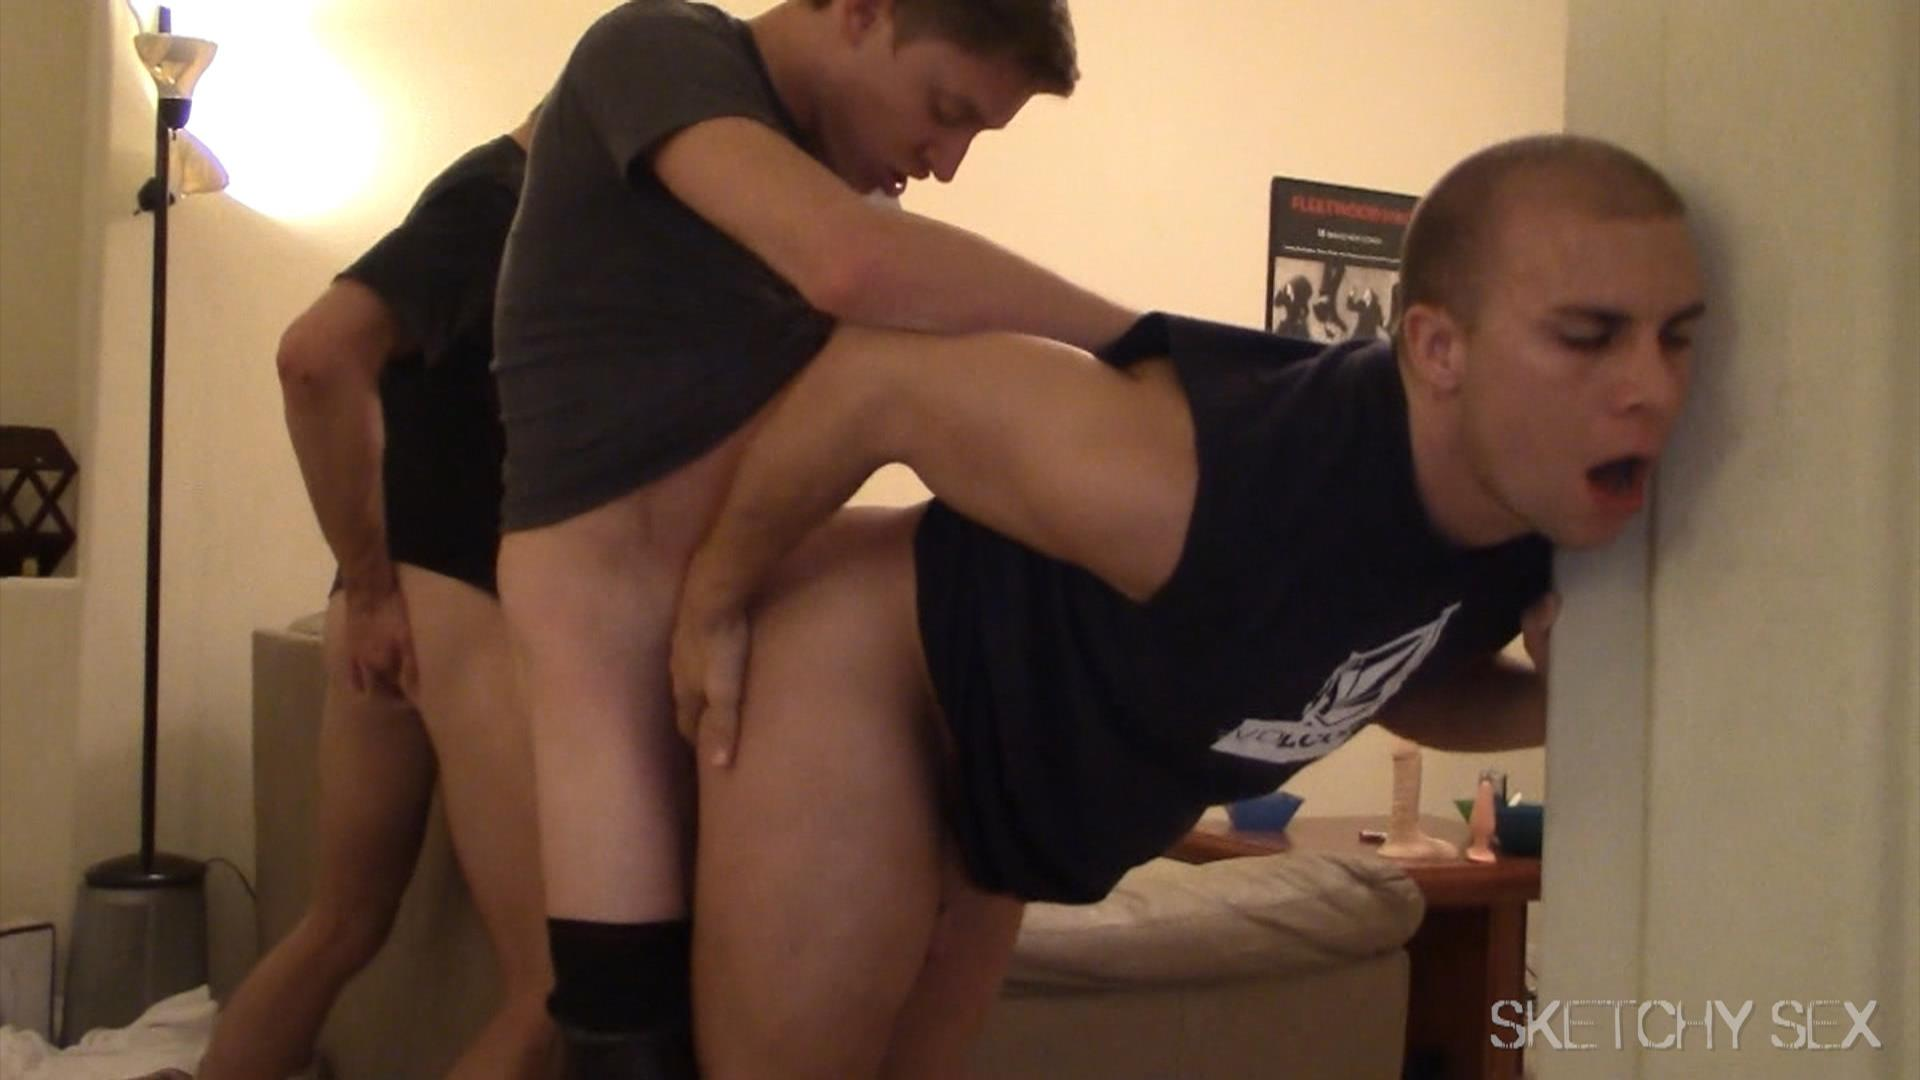 Sketchy Sex Anonymous Bareback Sex Party Big Dick Amateur Gay Porn 14 Getting Tag Teamed At A Bareback Anonymous Sex Encounter